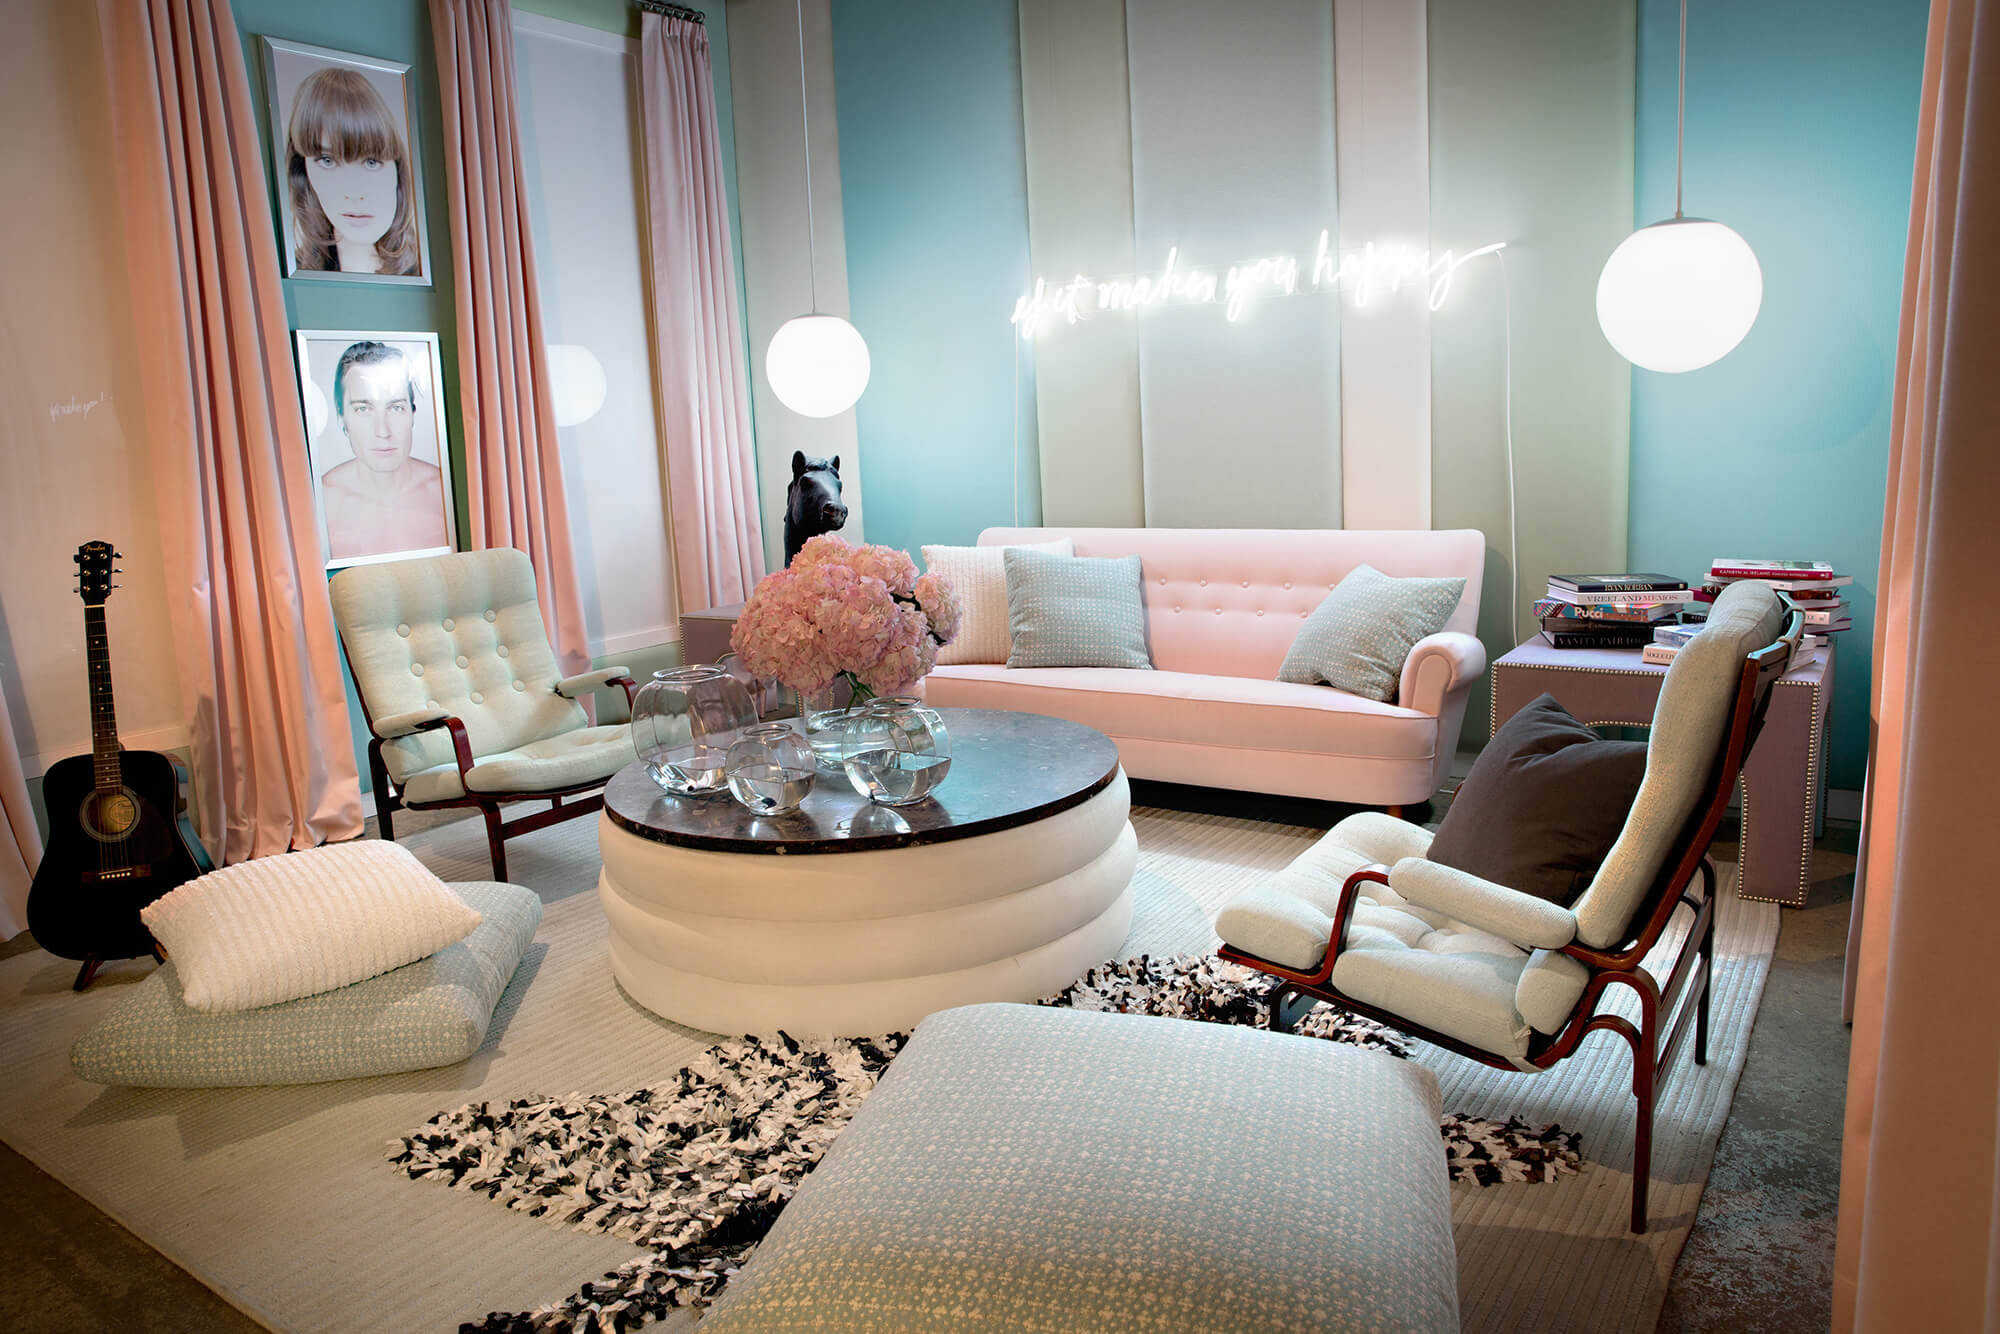 A white sofa gets a pop of color with teal and pink decorative throw pillows made using Sunbrella fabrics